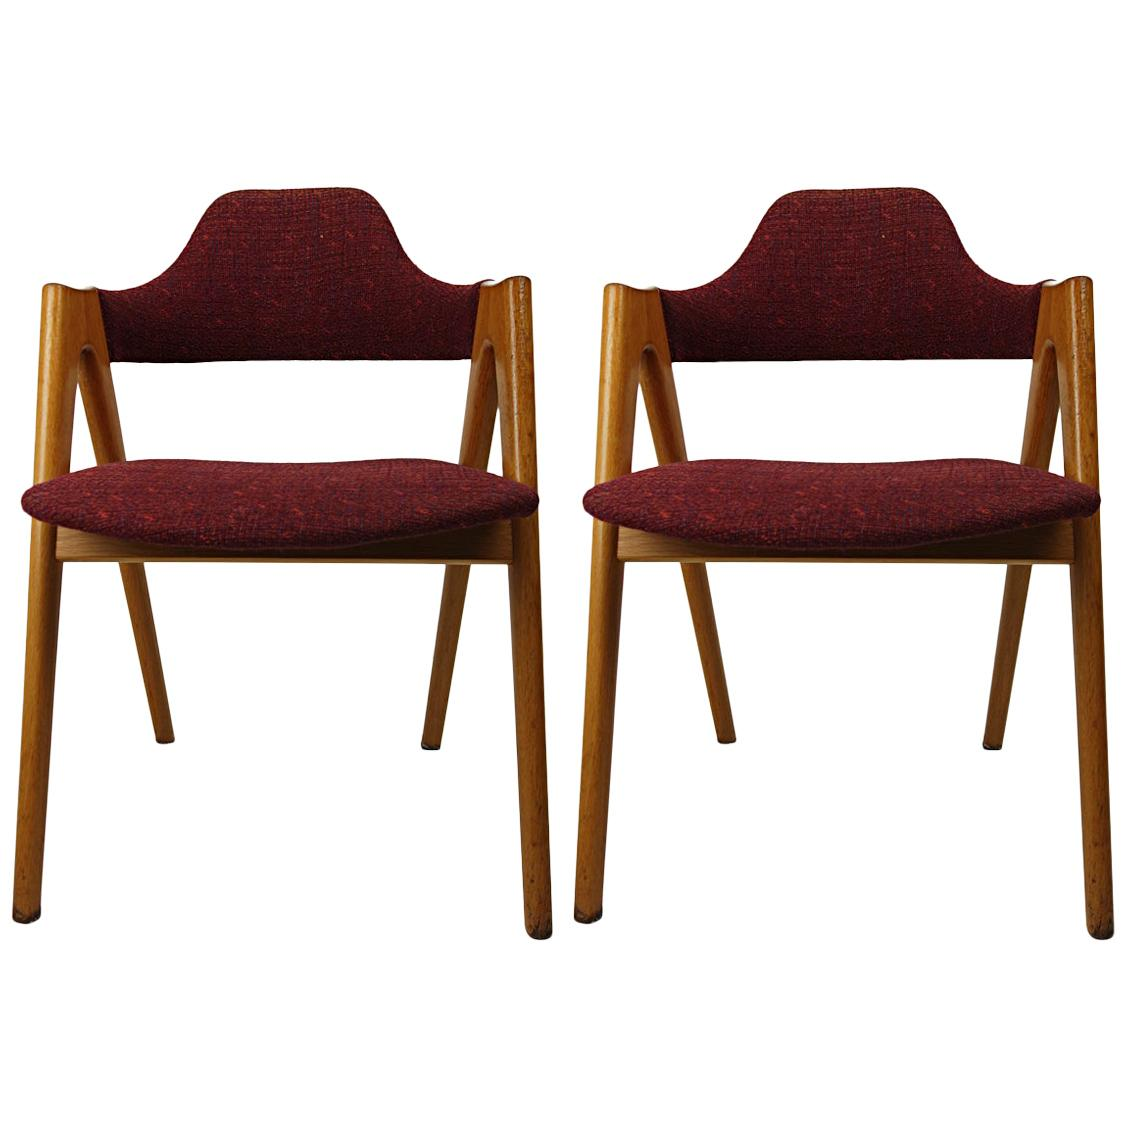 Pair of Mid-Century Modern Compass Chairs by Kai Kristiansen for SVA Møbler